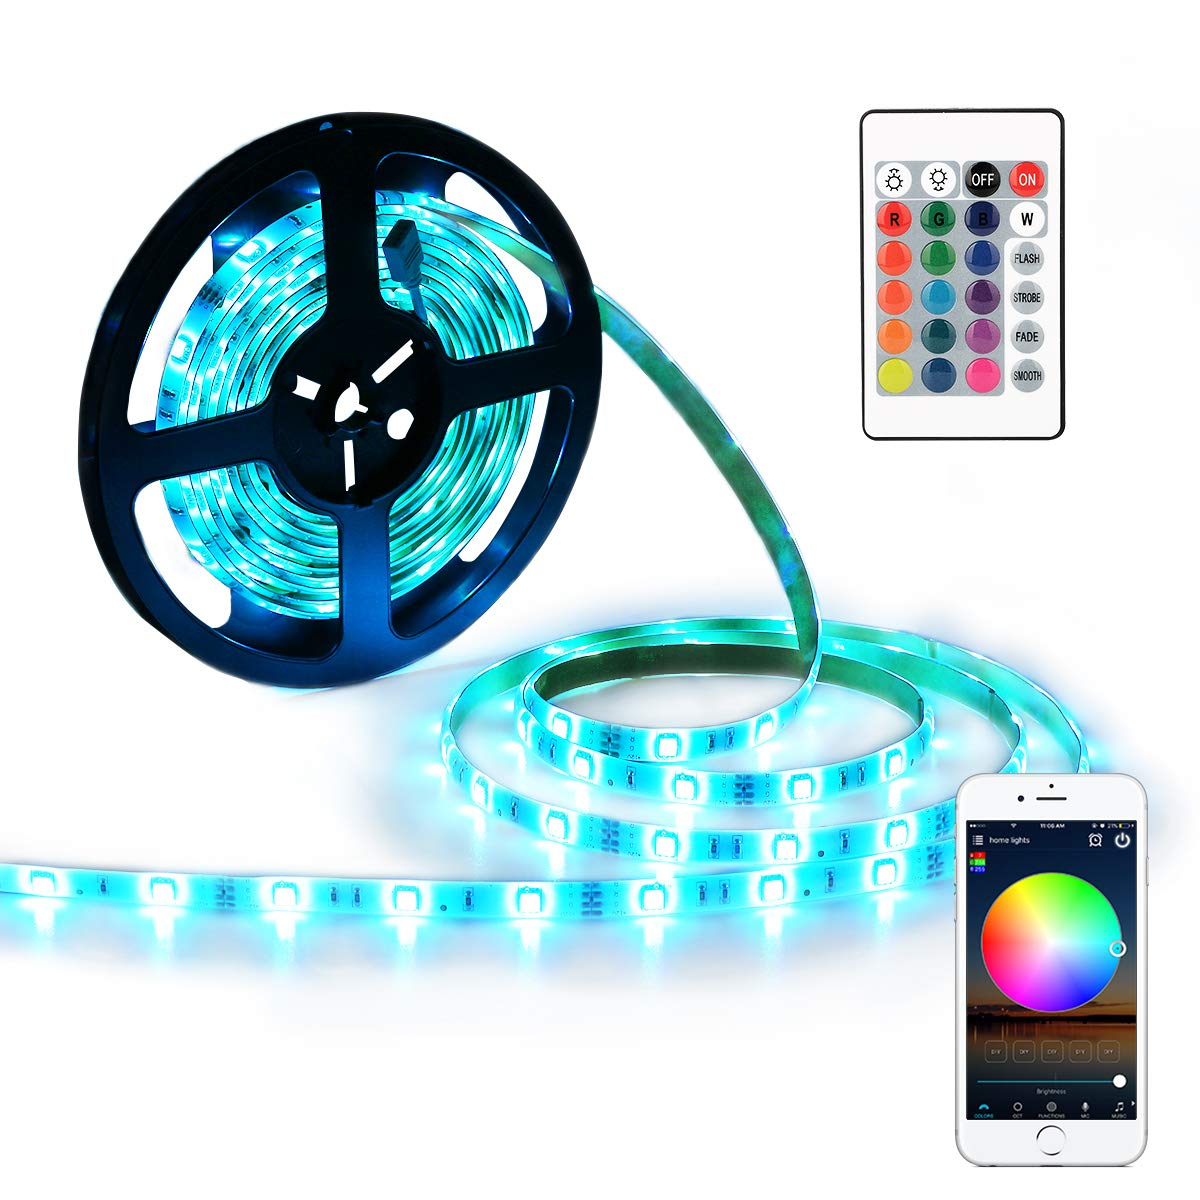 YiHong LED Light Strip RGB Strip Lights LED Tape Lights Compatible with Alexa and Google Home 150 5050 SMD LEDs Smart WiFi Strip Lights